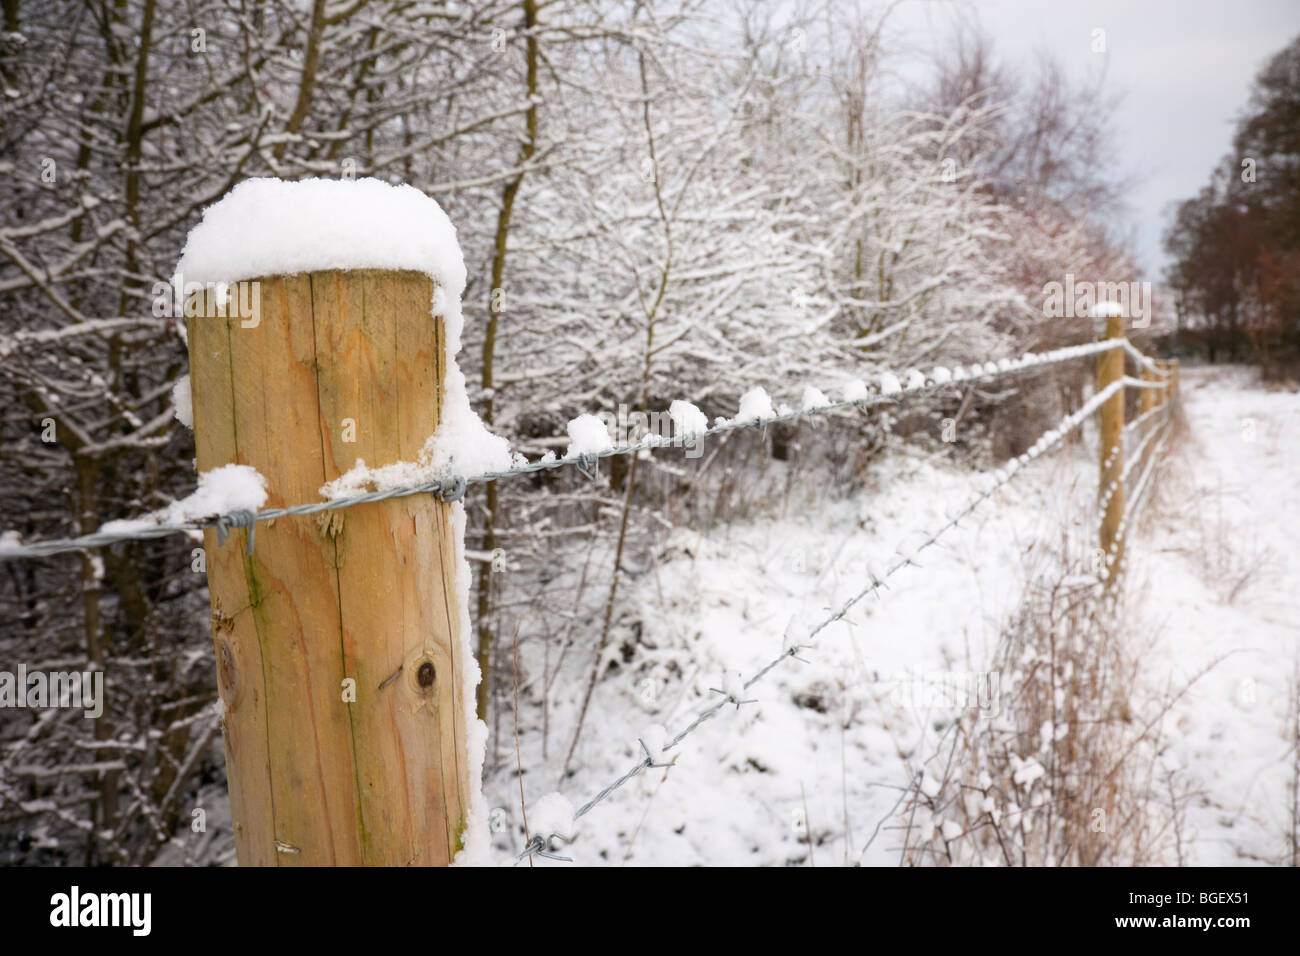 Barbed wire fence around a field with snow in winter. England, UK, Britain - Stock Image